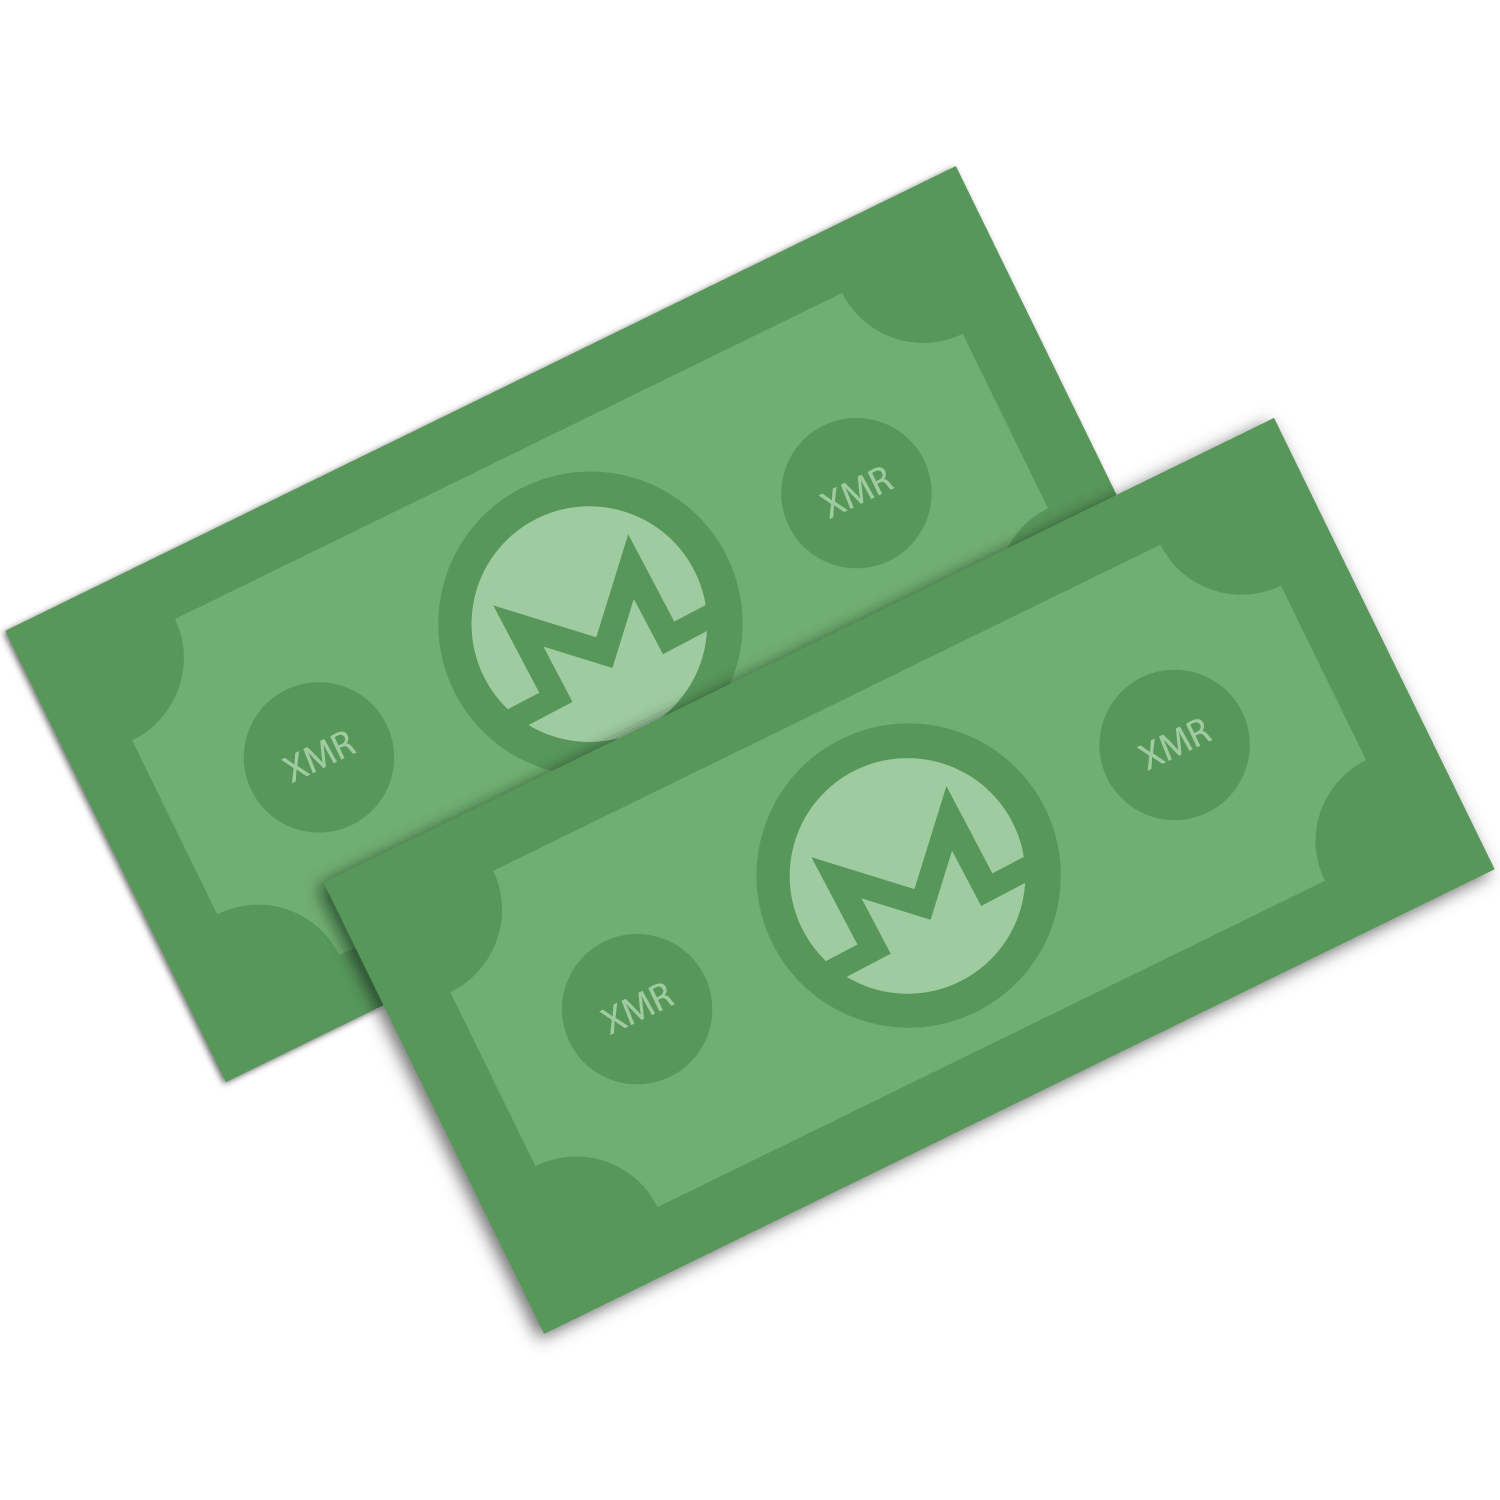 How To Buy Monero (XMR) Anonymously (Without ID) Guide - The Most Private Way in 2019 — LocalMonero